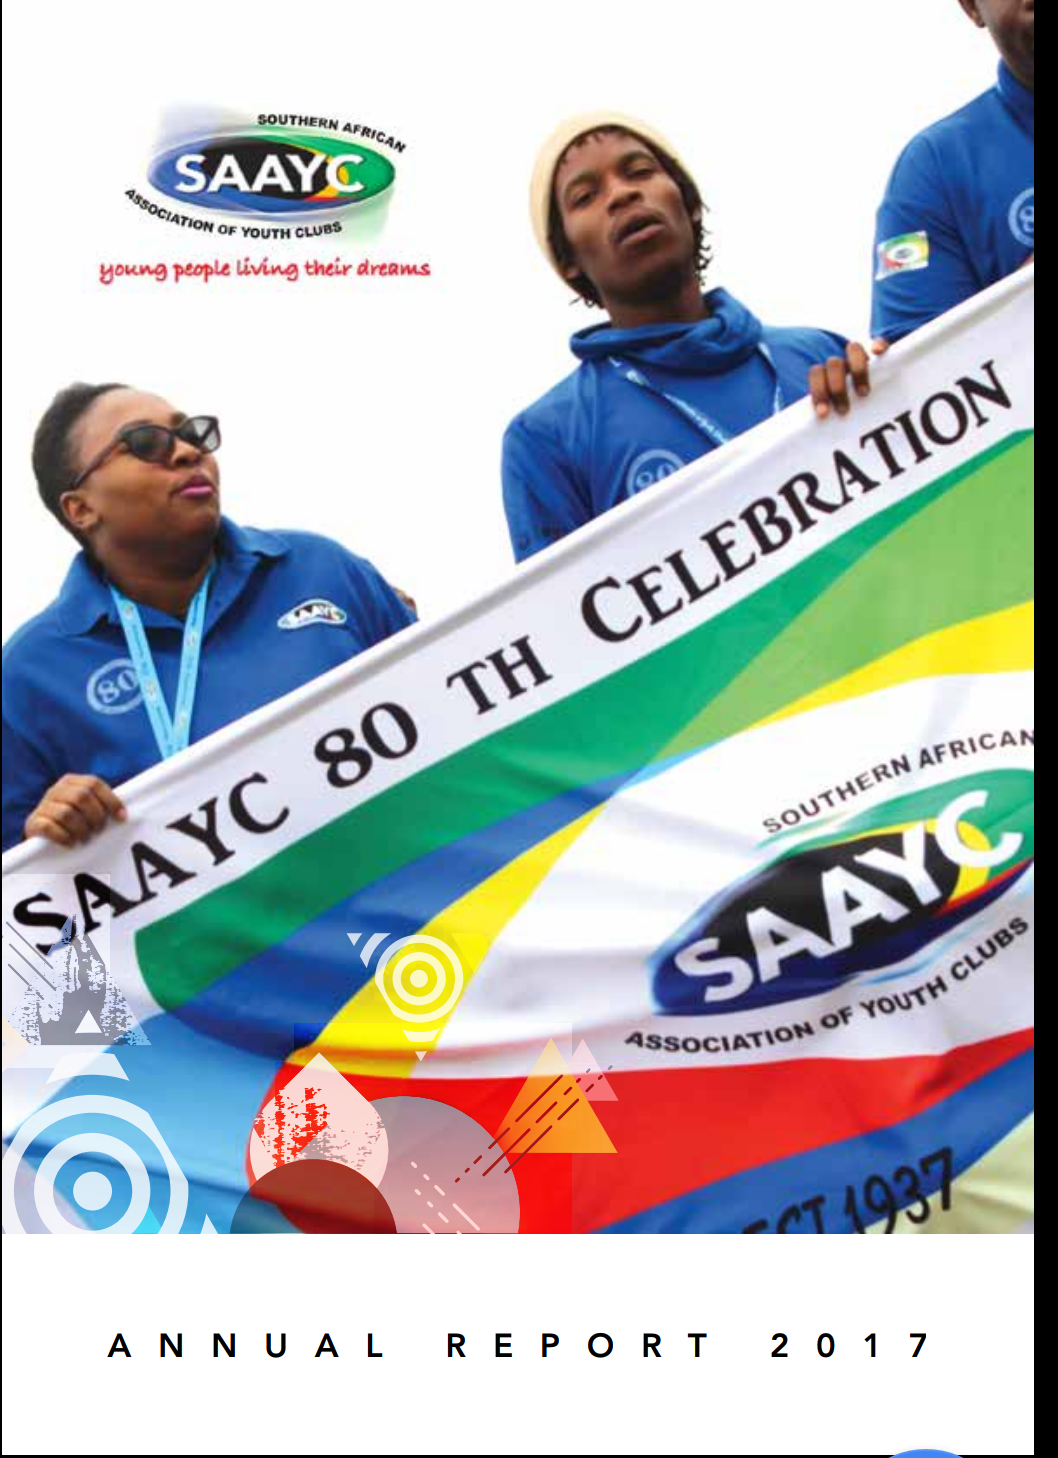 Southern African Association of Youth Clubs Annual Report 2017